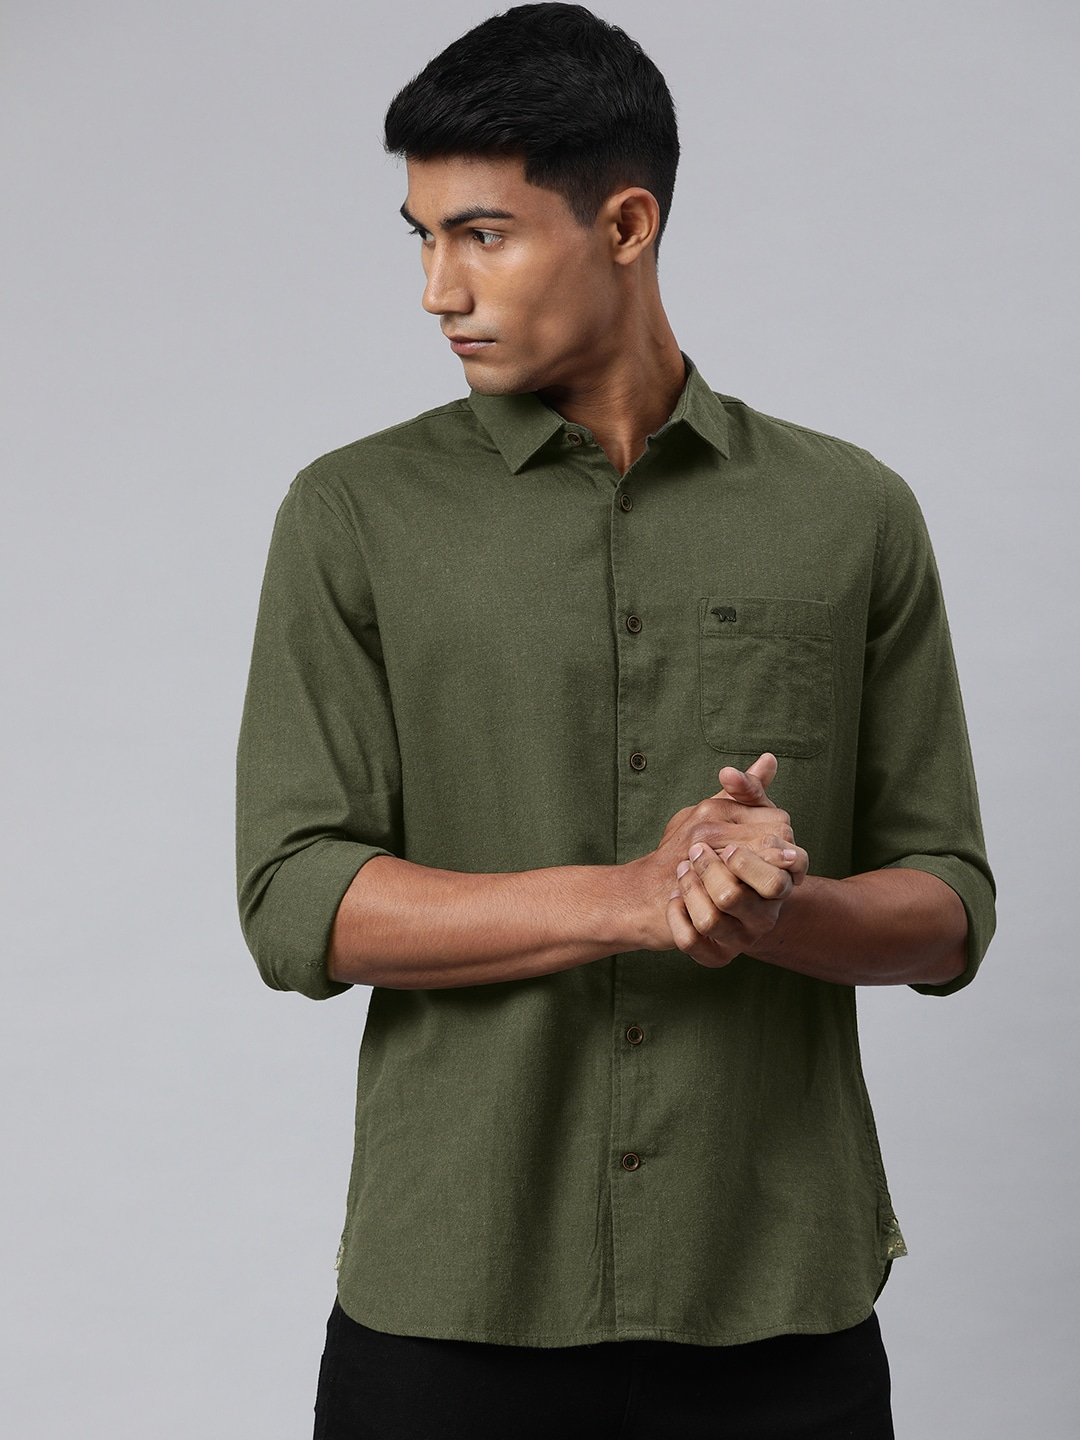 The Bear House | Men's Olive Solid Casual Shirt